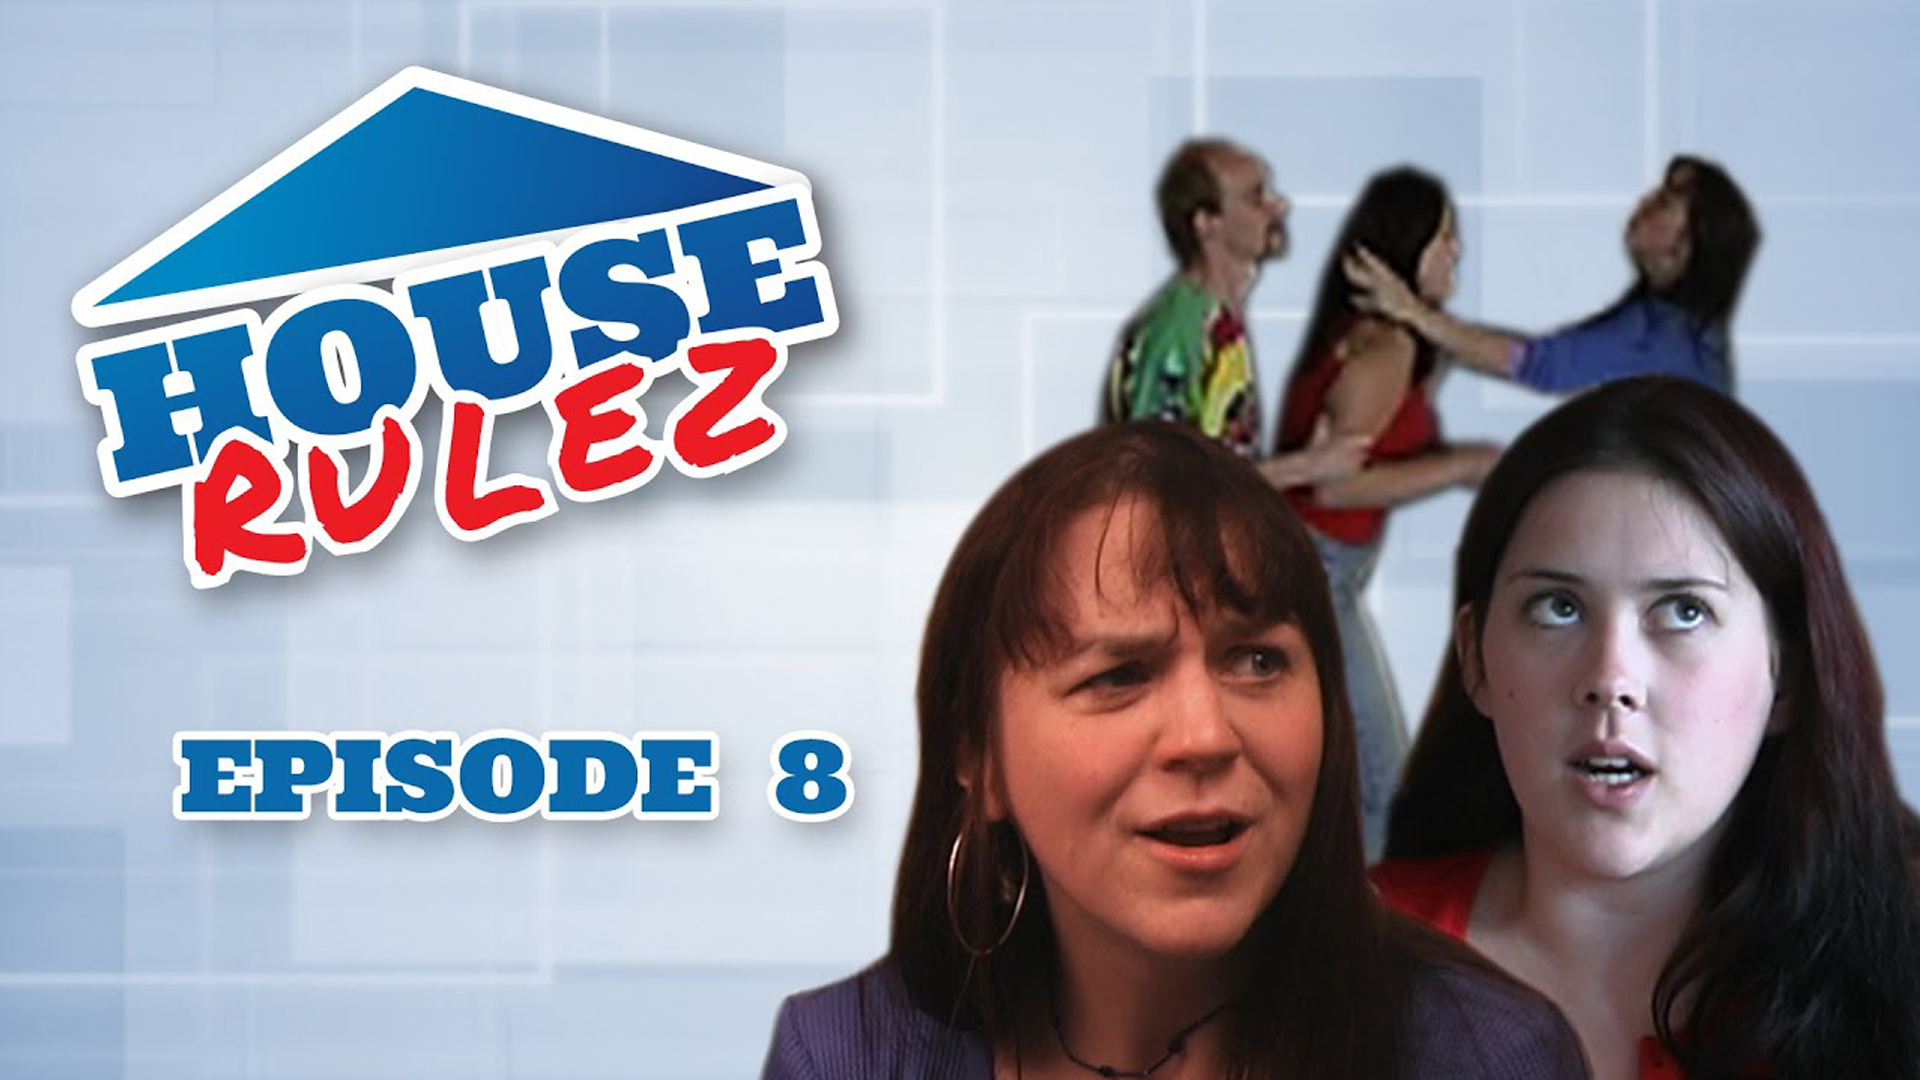 House Rulez Episode 8